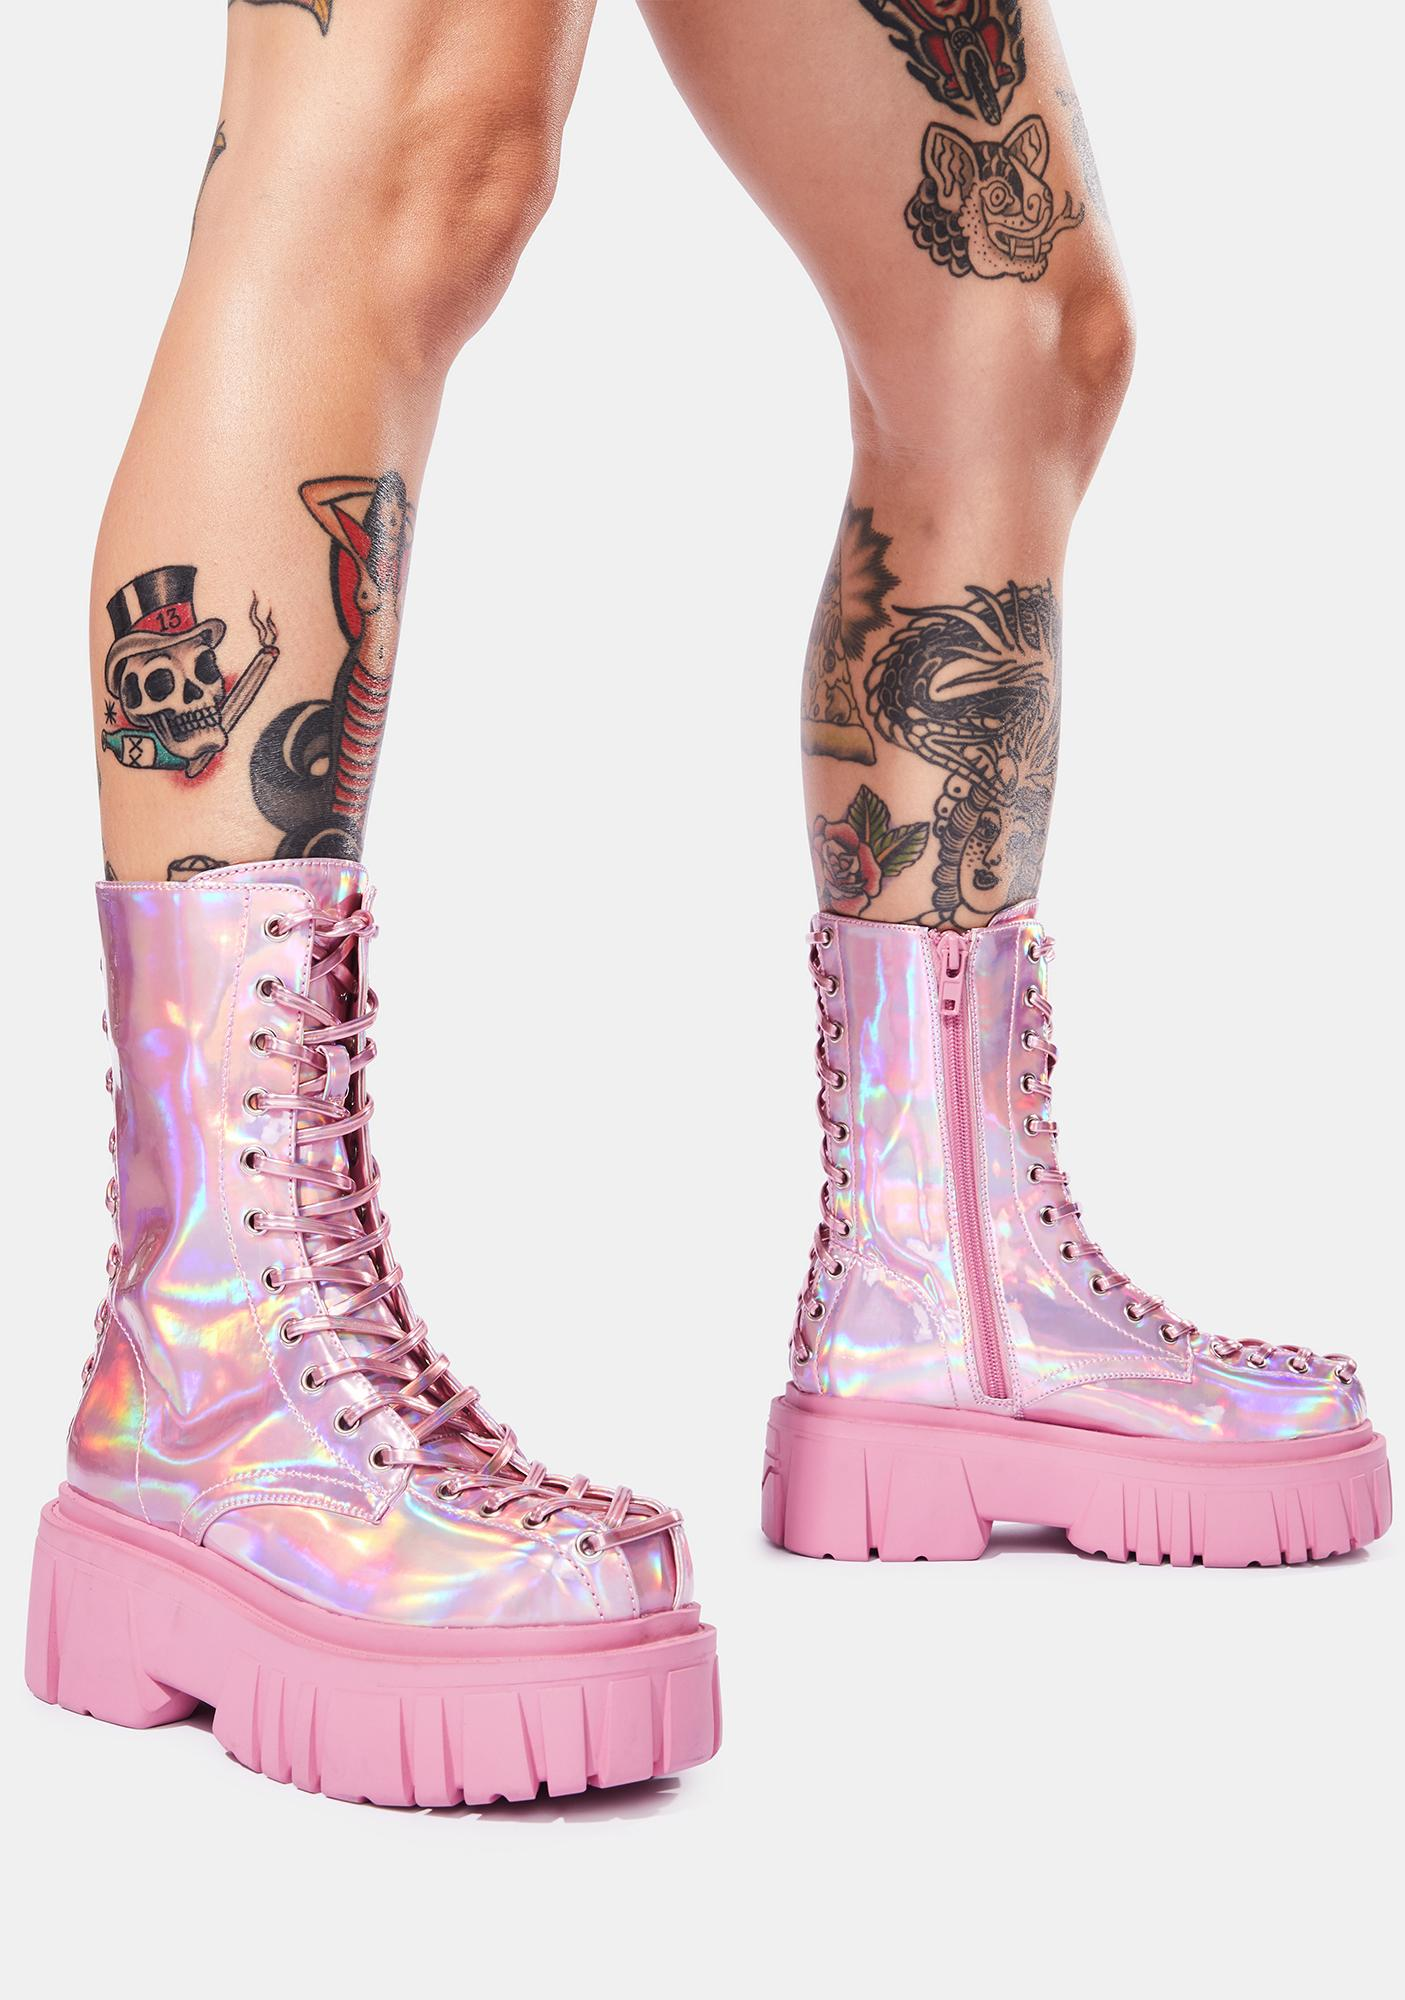 Club Exx Celestial Candy Holographic Corset Boots